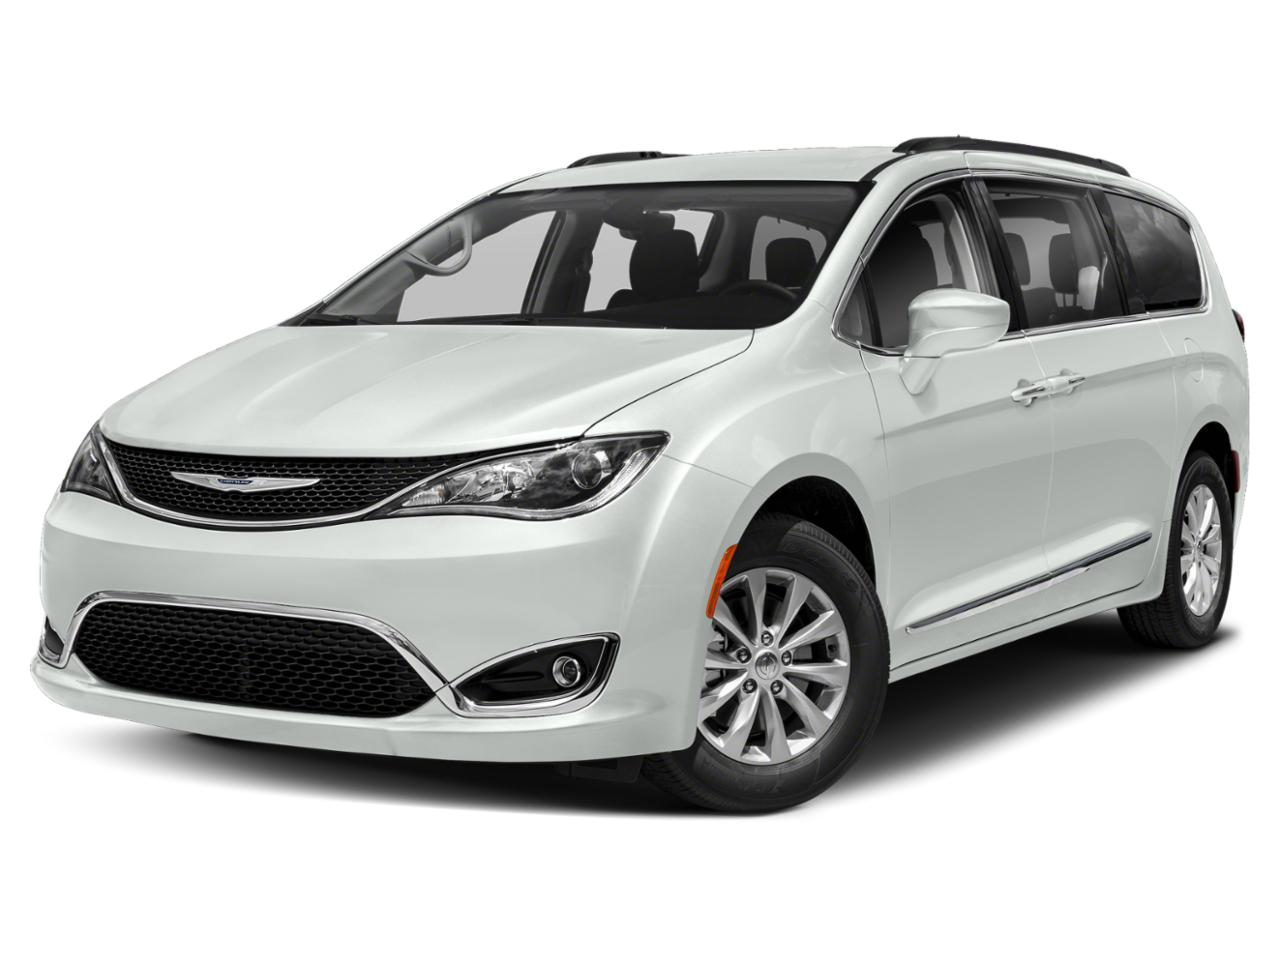 2020 Chrysler Pacifica Vehicle Photo in Owensboro, KY 42303